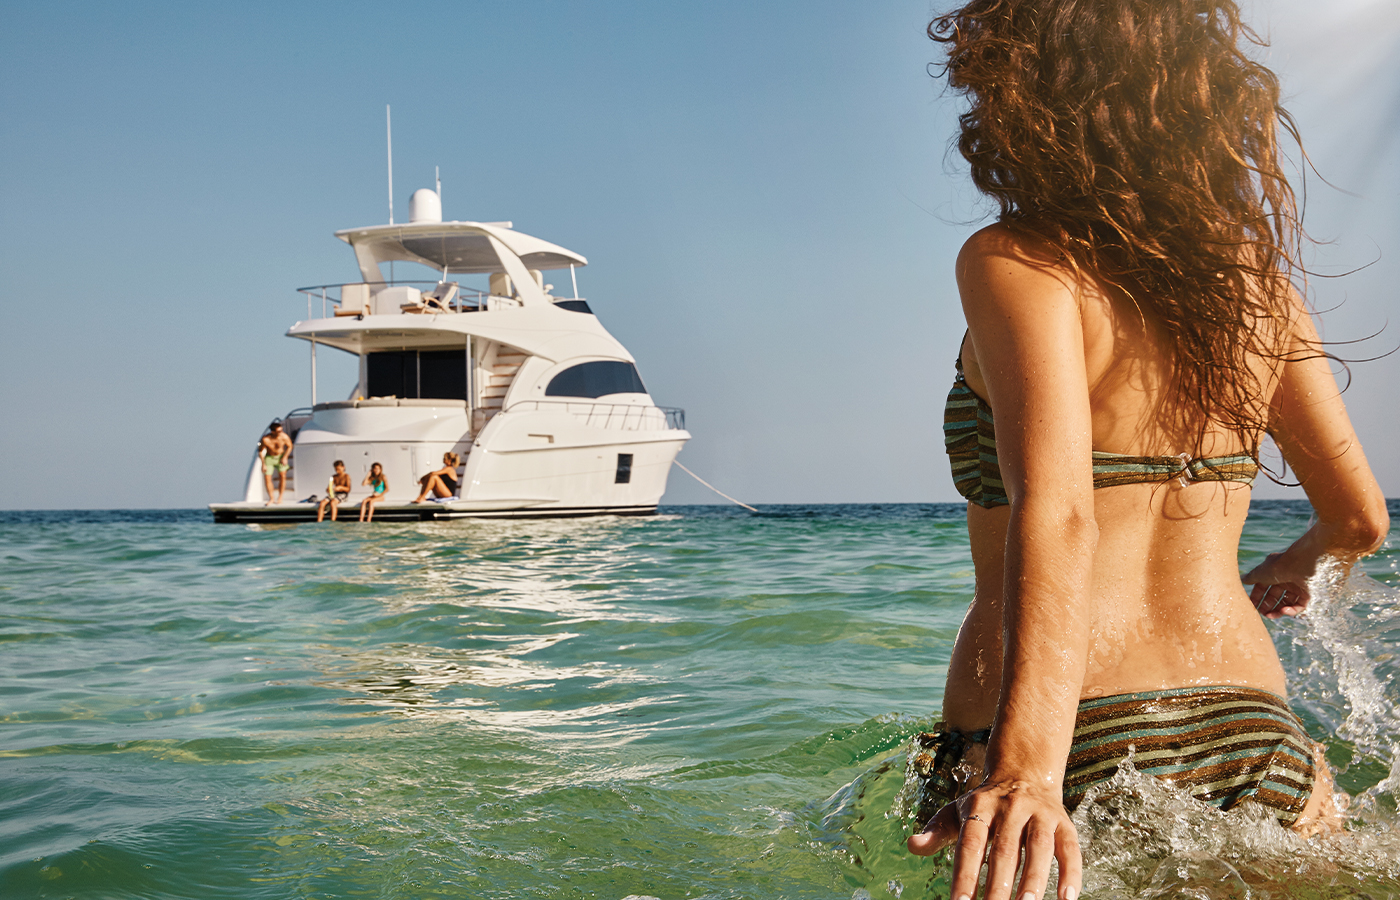 Family Vacation This Summer On A Luxury Yacht Charter